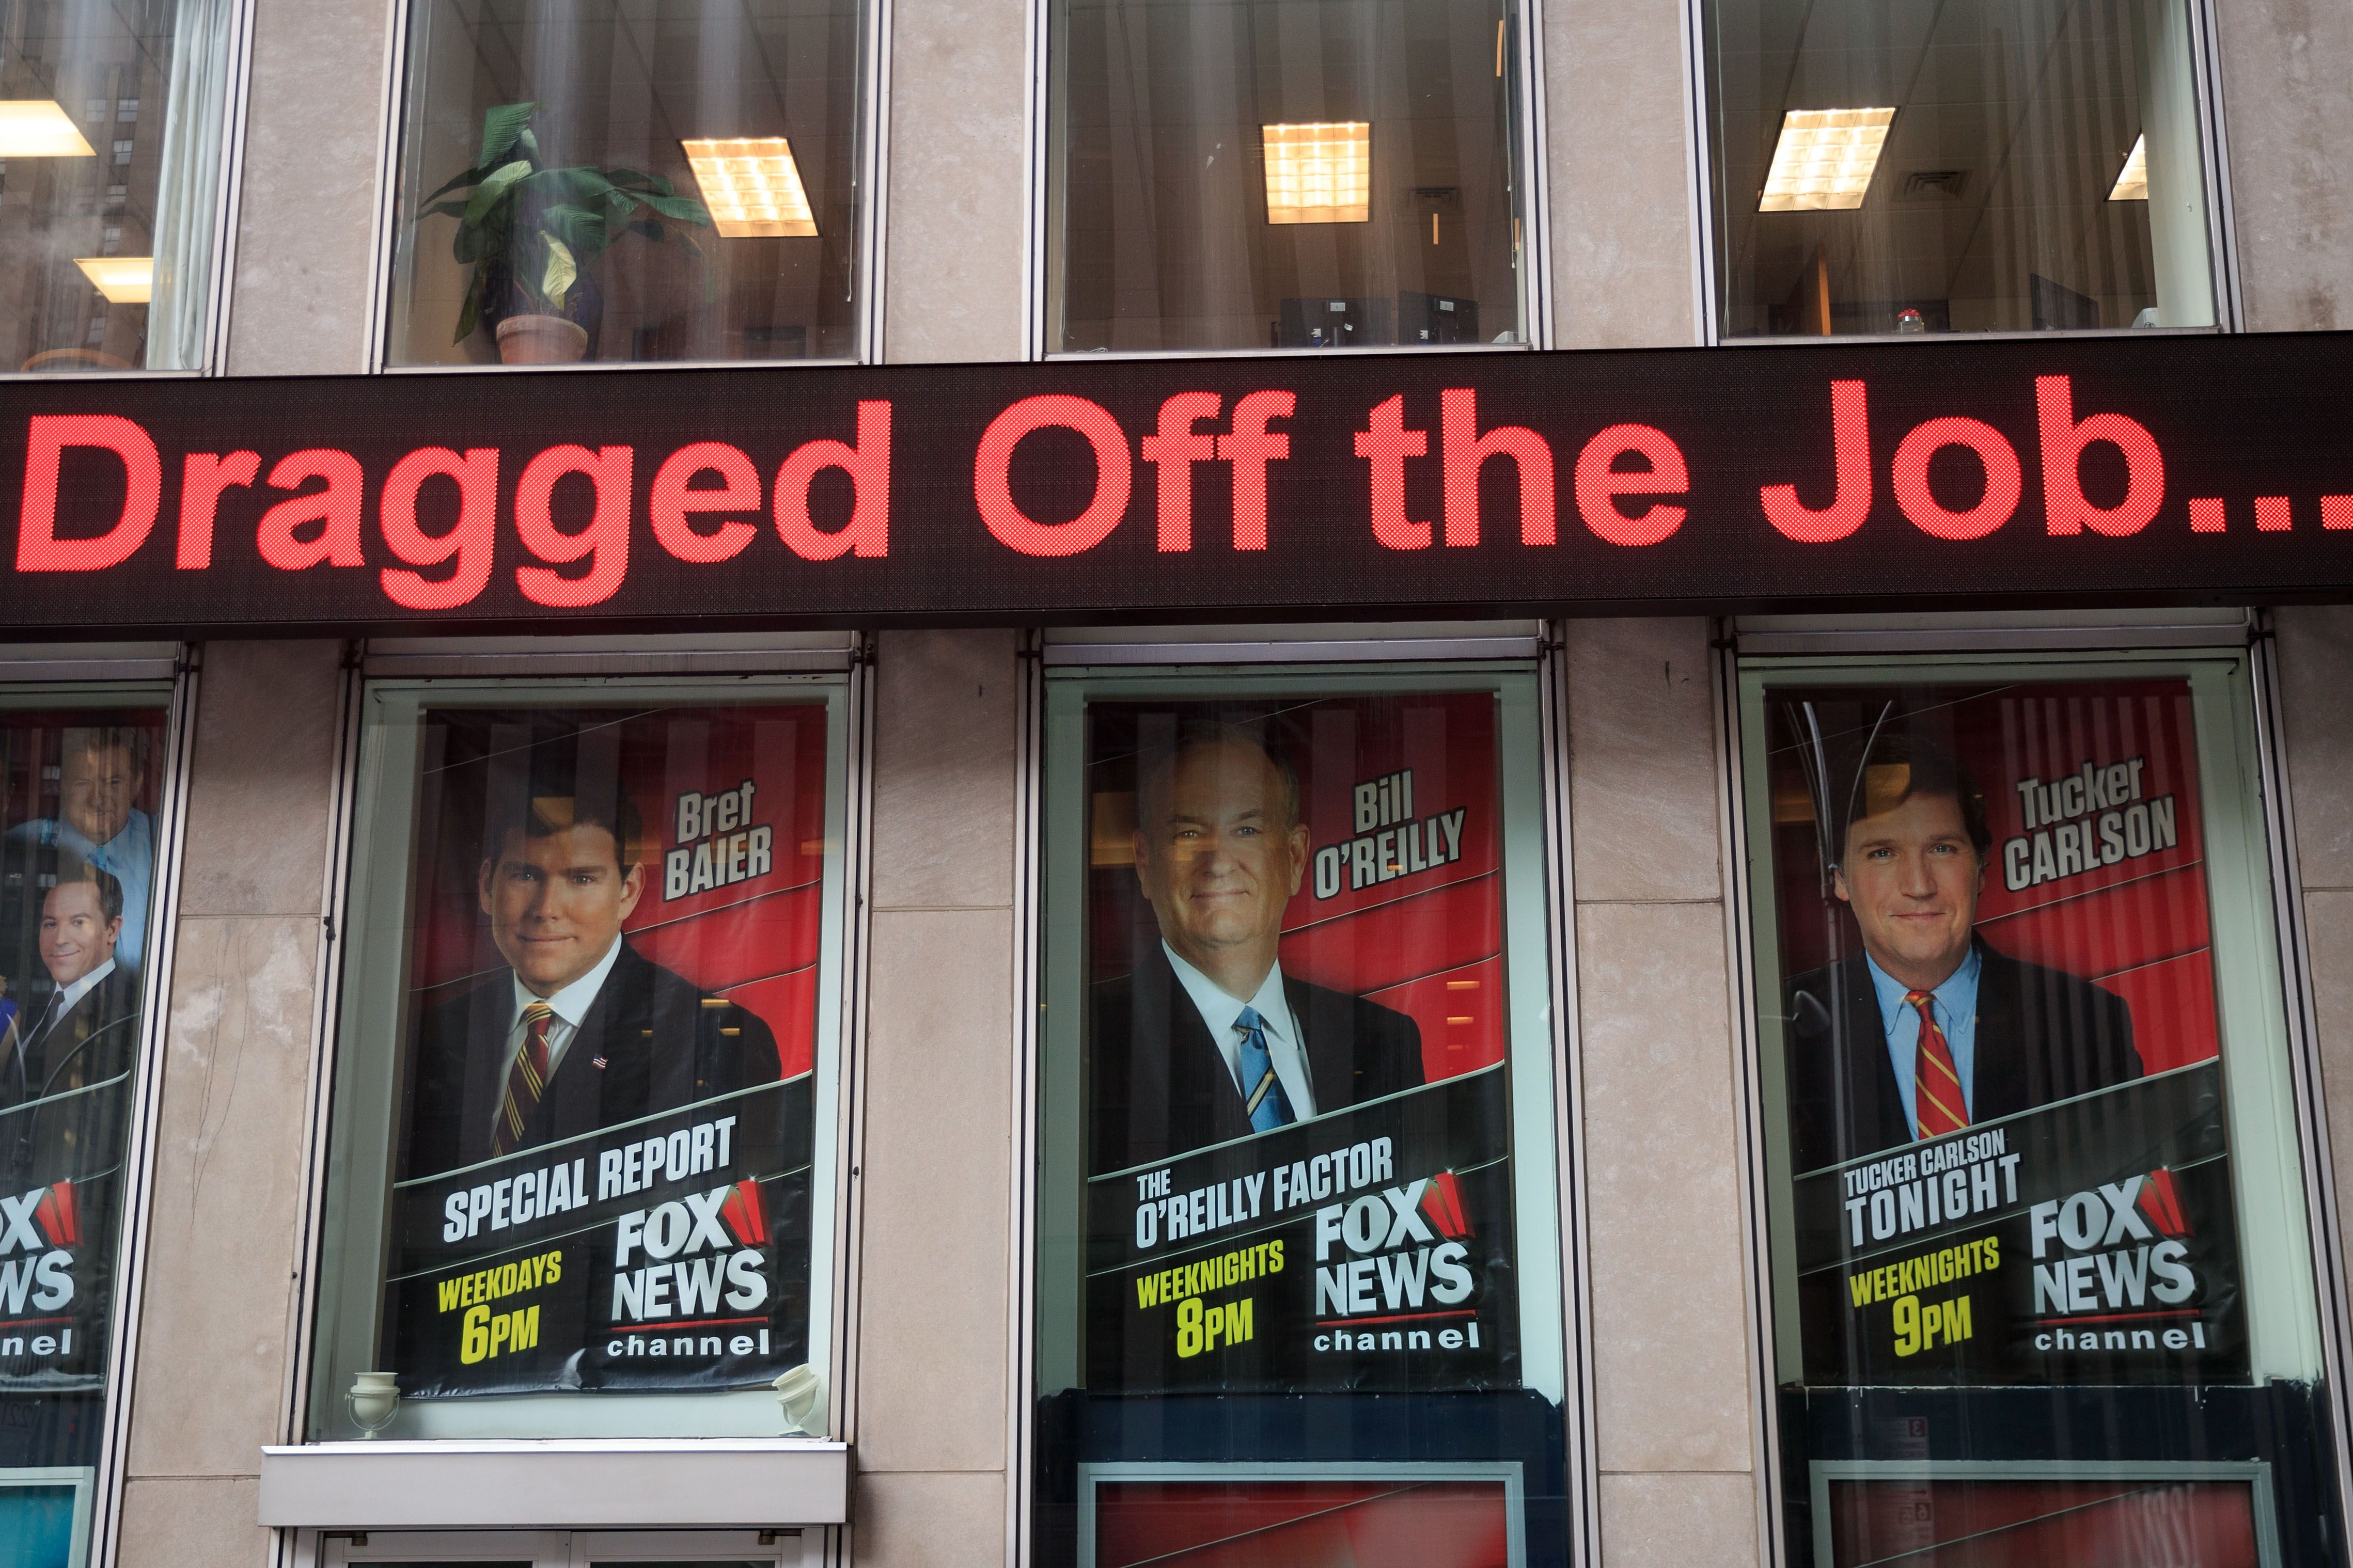 Fox News reportedly parting ways with Bill O'Reilly